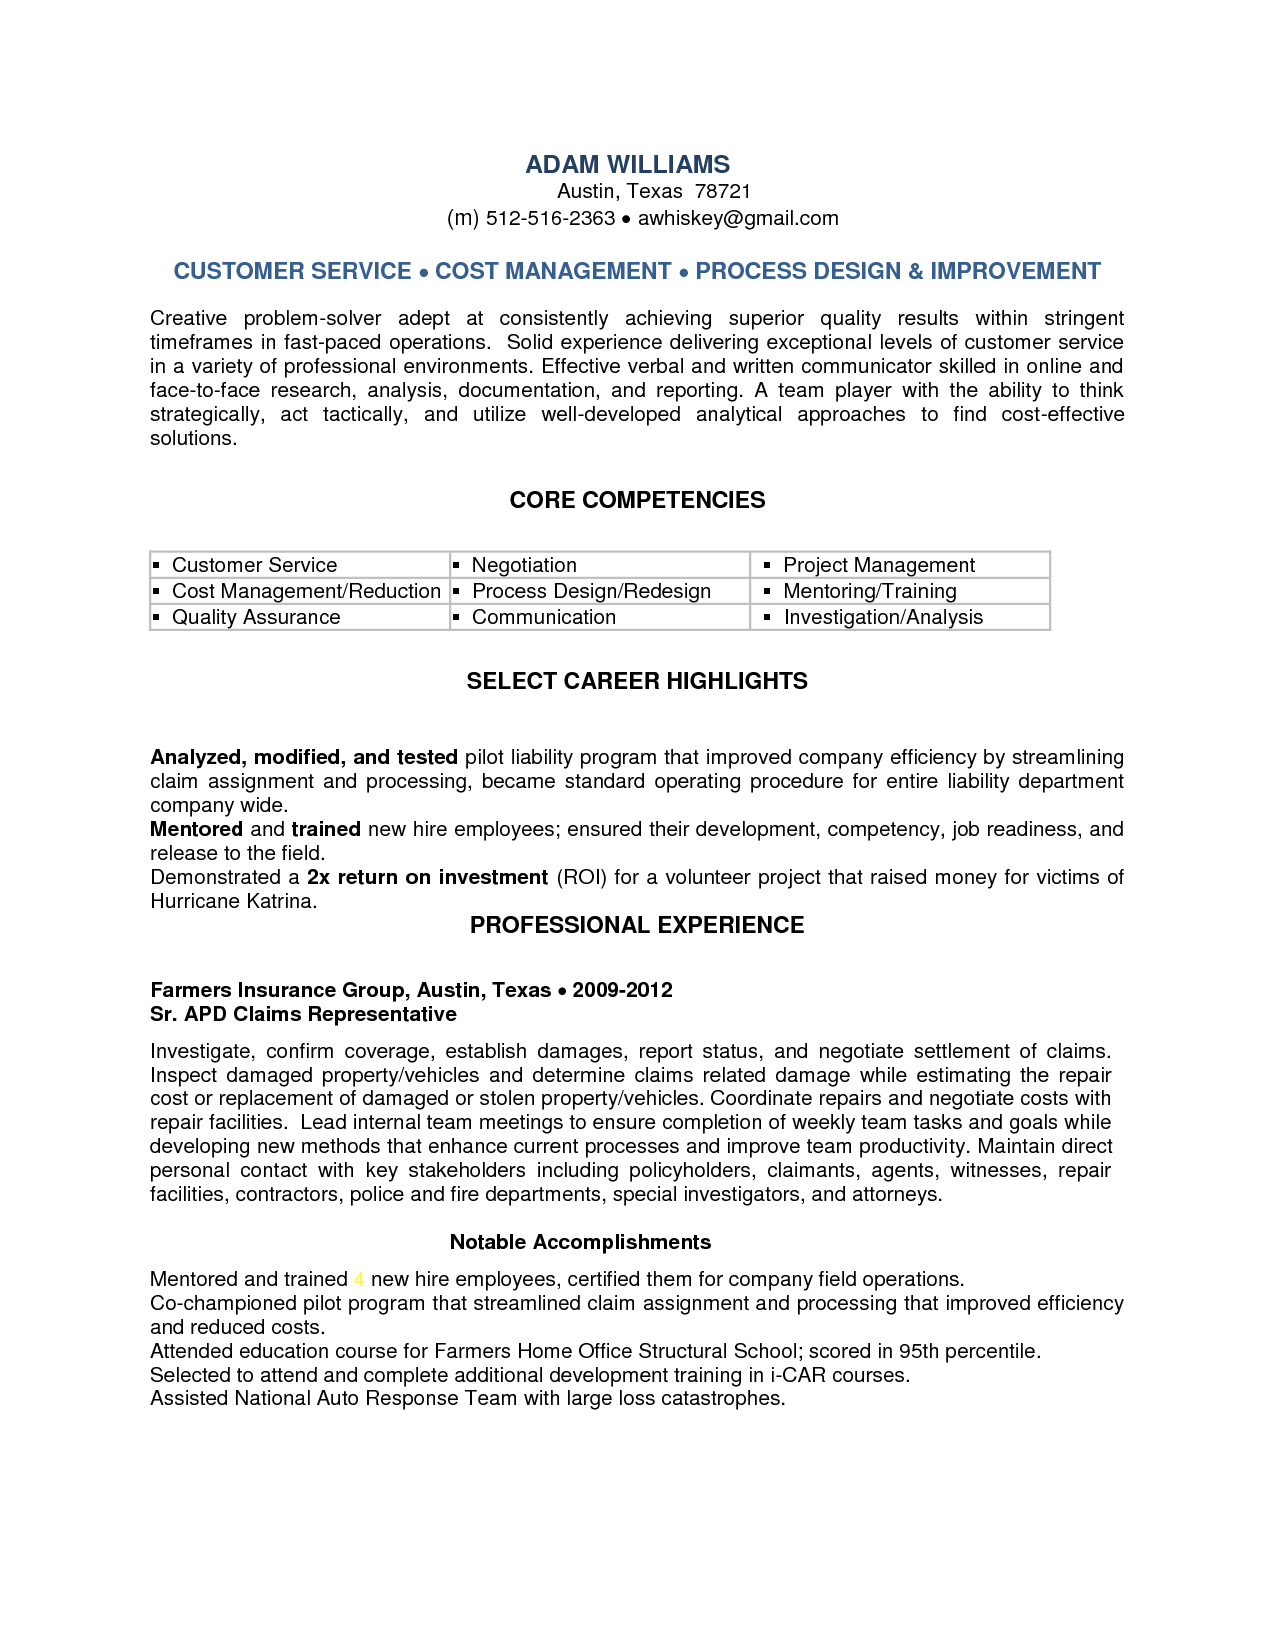 Sample Csr Resume Insurance Claims Representative Resume professional experience